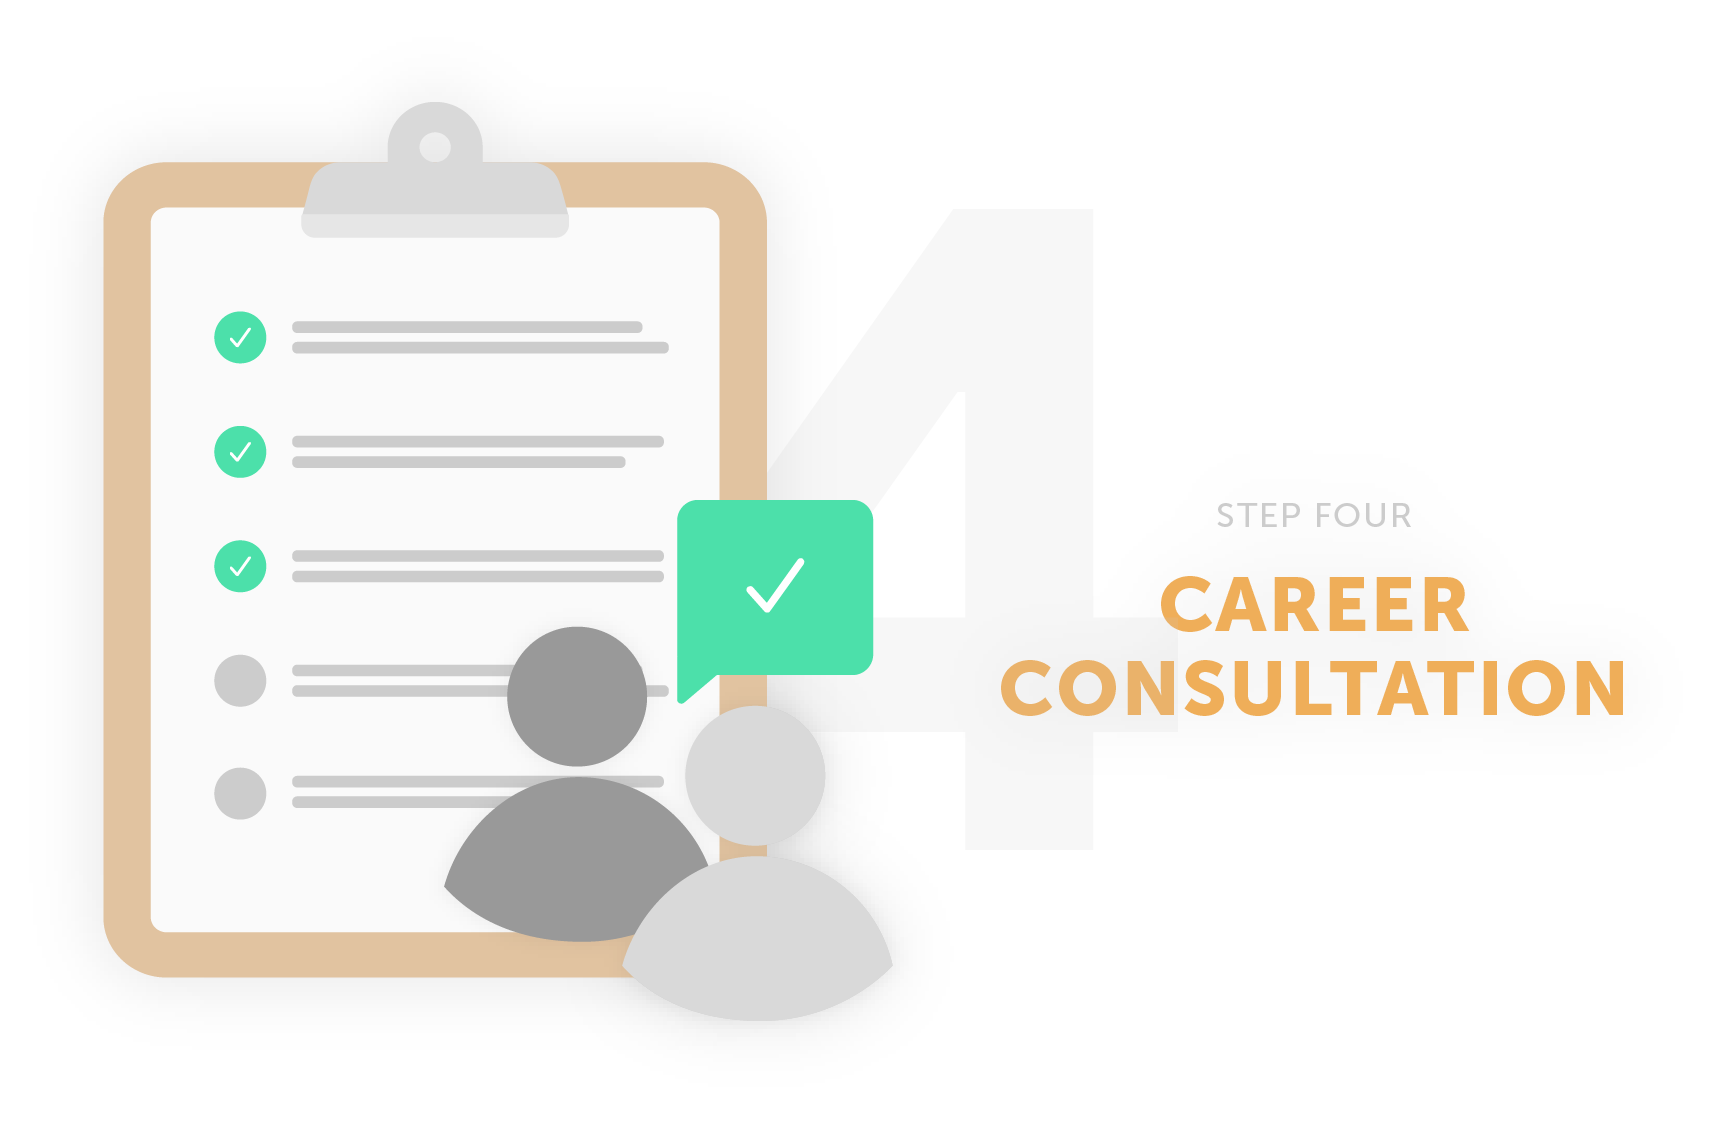 step four career consultation